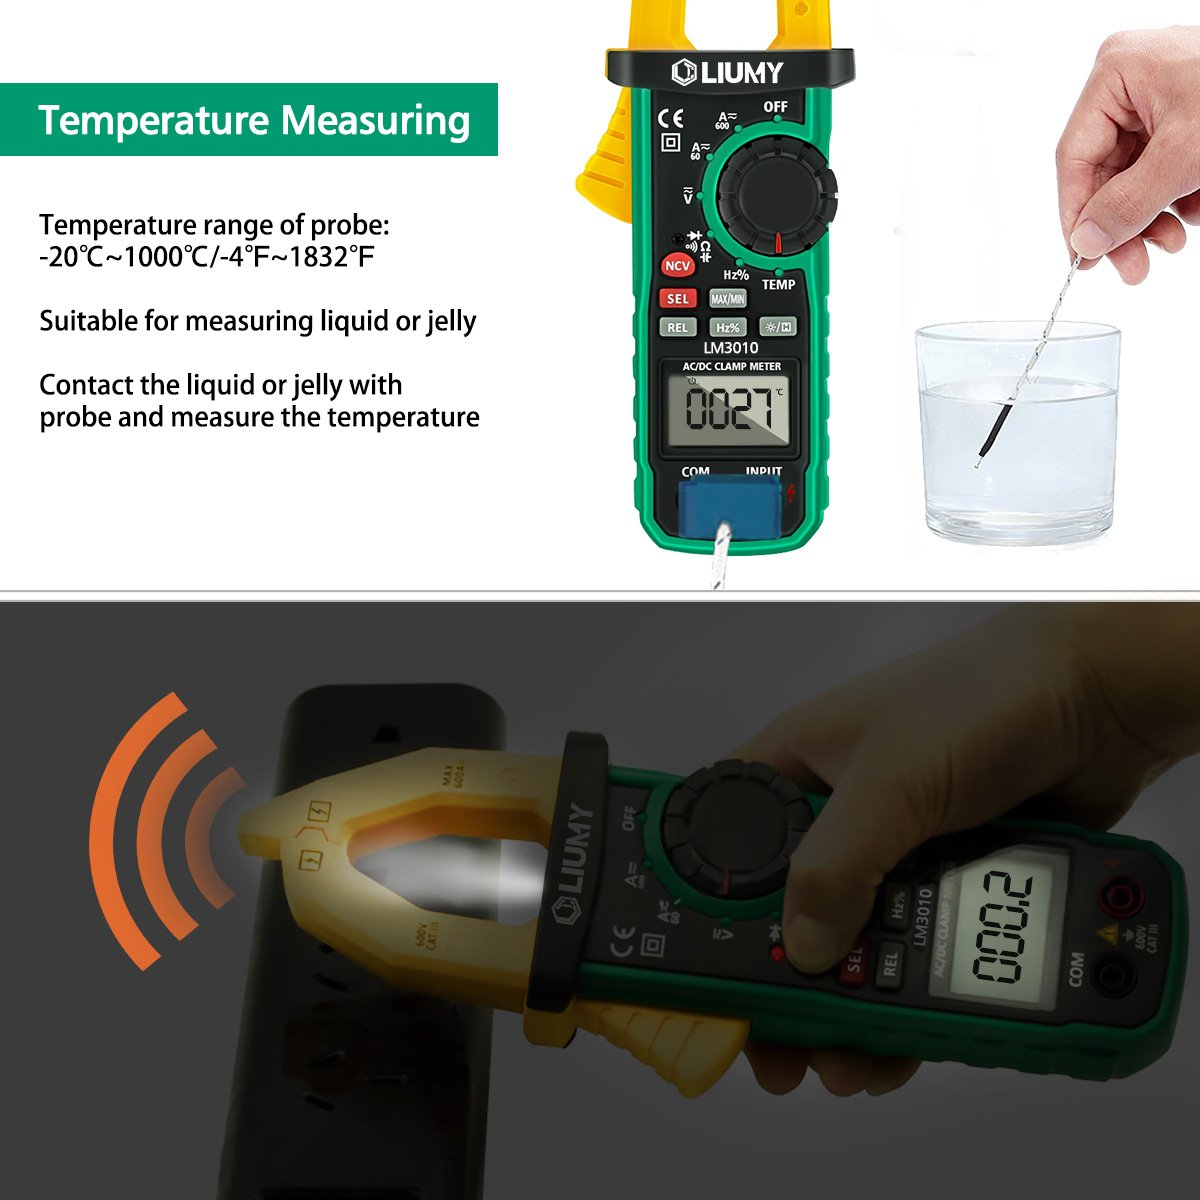 Digital Clamp Meter, LIUMY Auto-Ranging AC/DC Clamp Multimeter with Analog Function, NCV, Work Light/ Memory peak, Non- contact Voltages/ Frequency/ Resistance/ Capacitance/ Connections/ Diodes by Liumy (Image #4)